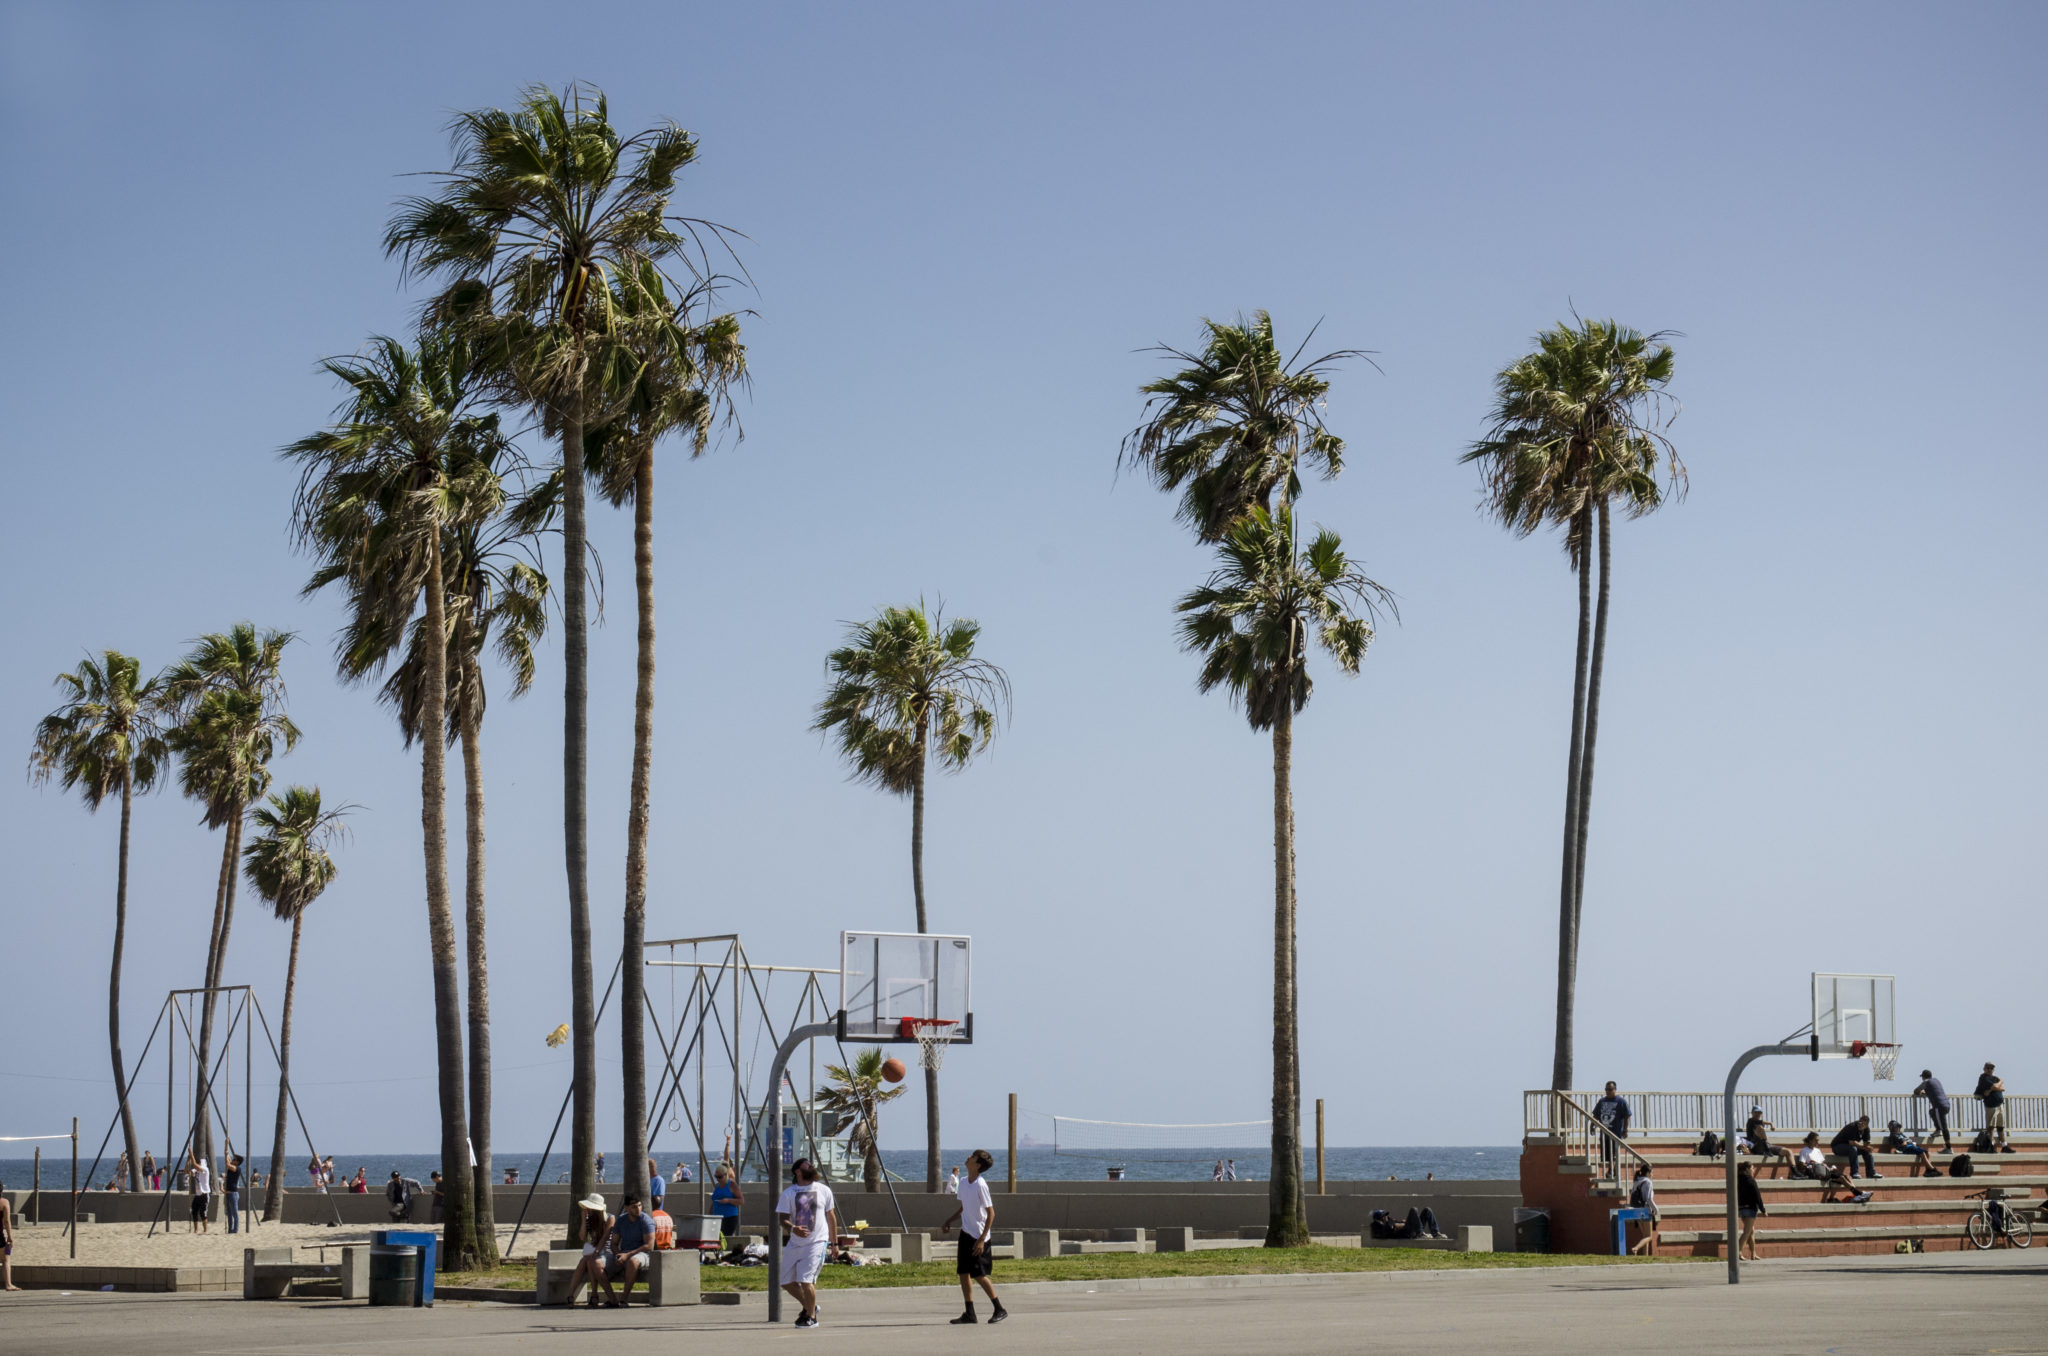 Venice-Beach-Basketballfeld